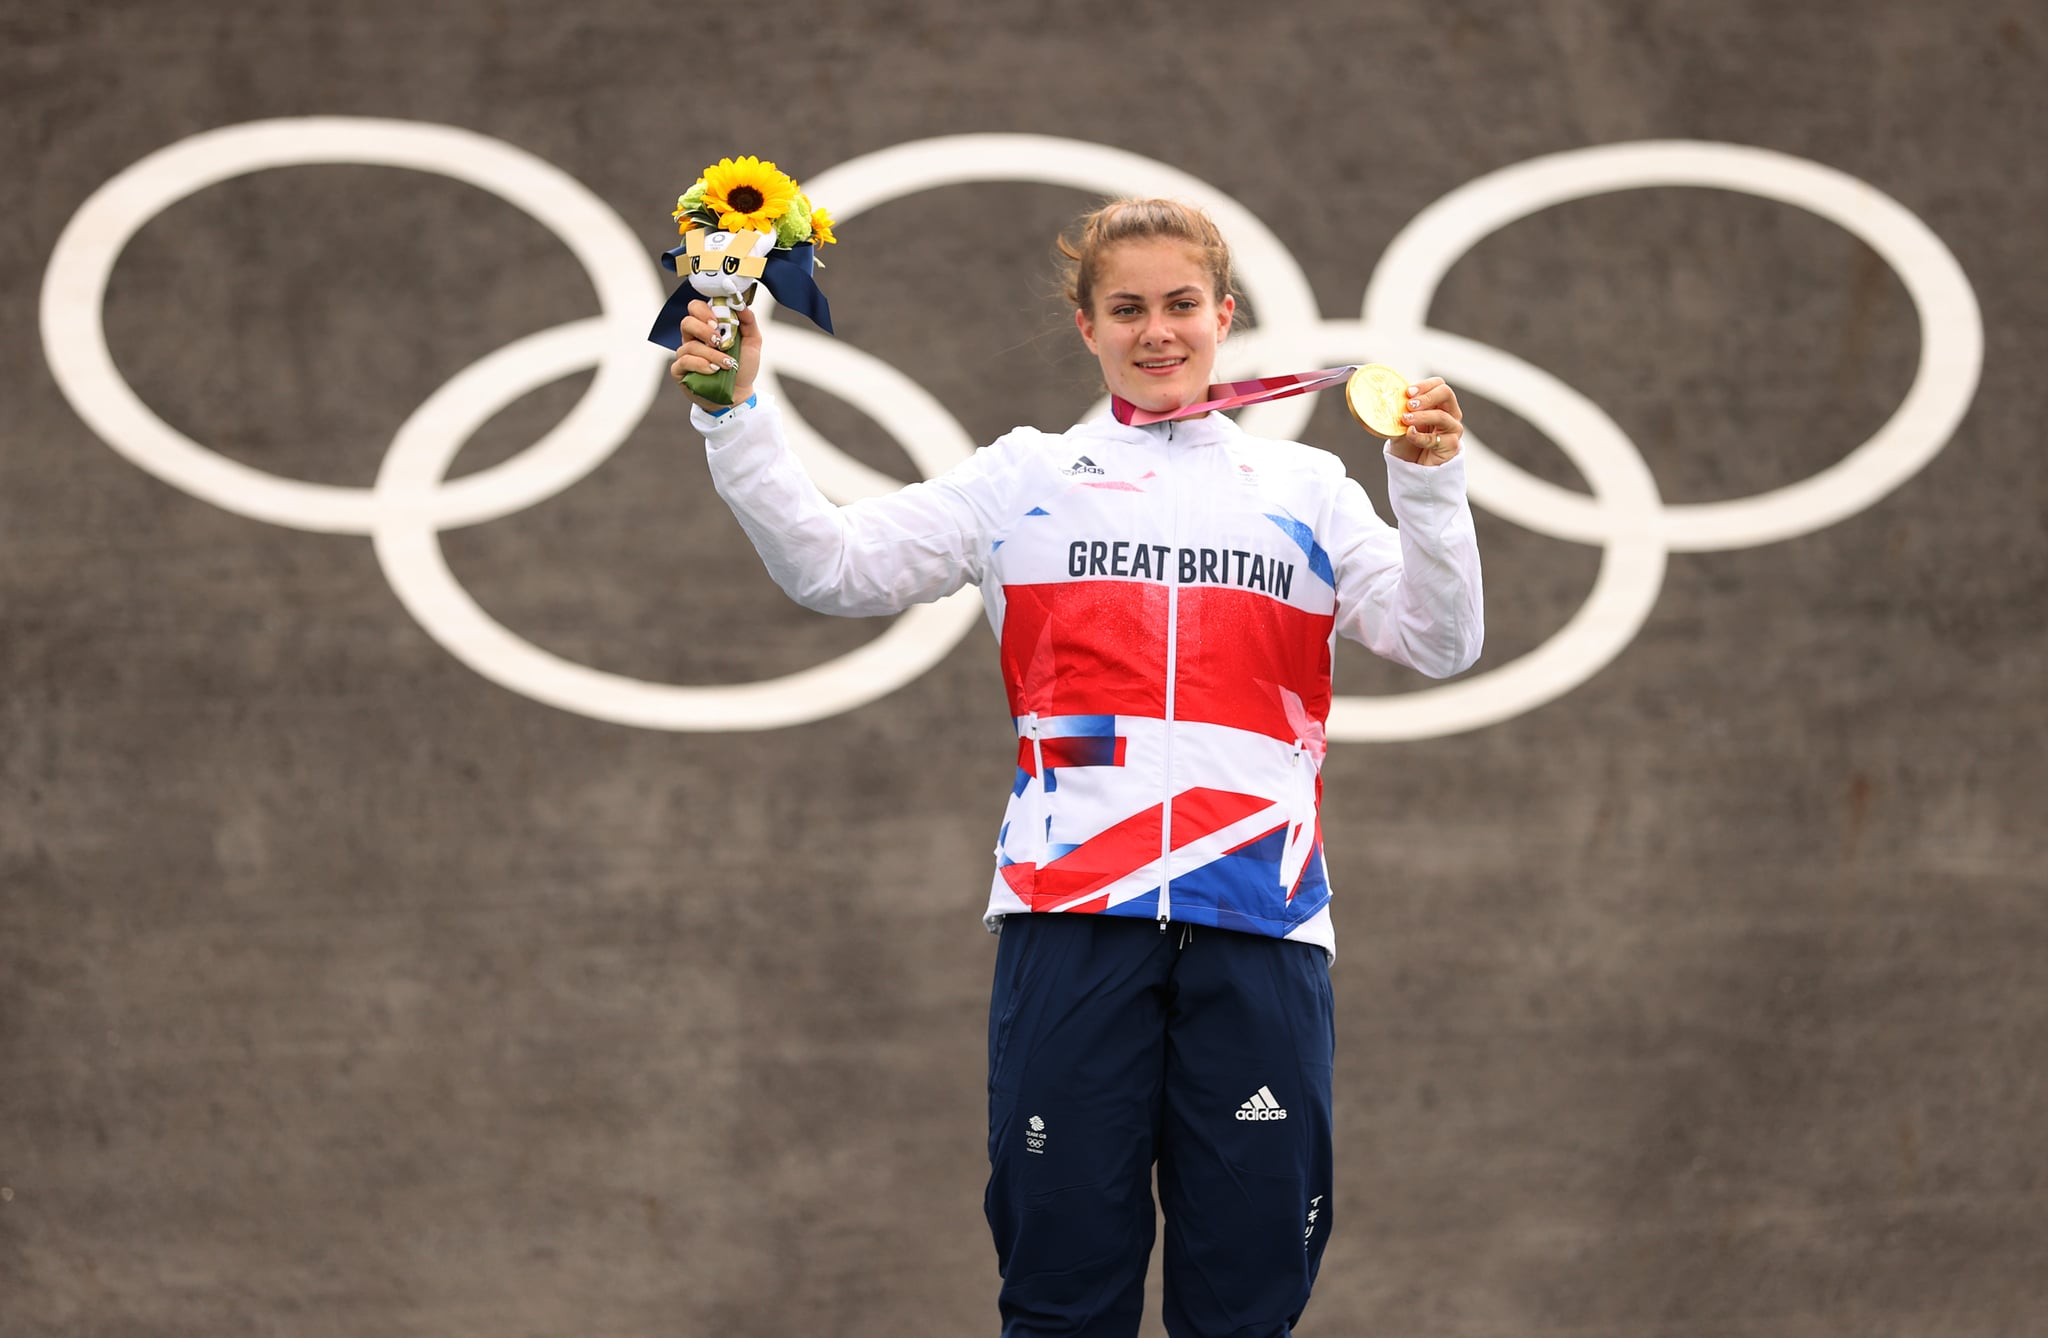 TOKYO, JAPAN - JULY 30: Bethany Shriever of Team Great Britain poses with the gold medal after the Women's BMX final on day seven of the Tokyo 2020 Olympic Games at Ariake Urban Sports Park on July 30, 2021 in Tokyo, Japan. (Photo by Francois Nel/Getty Images)